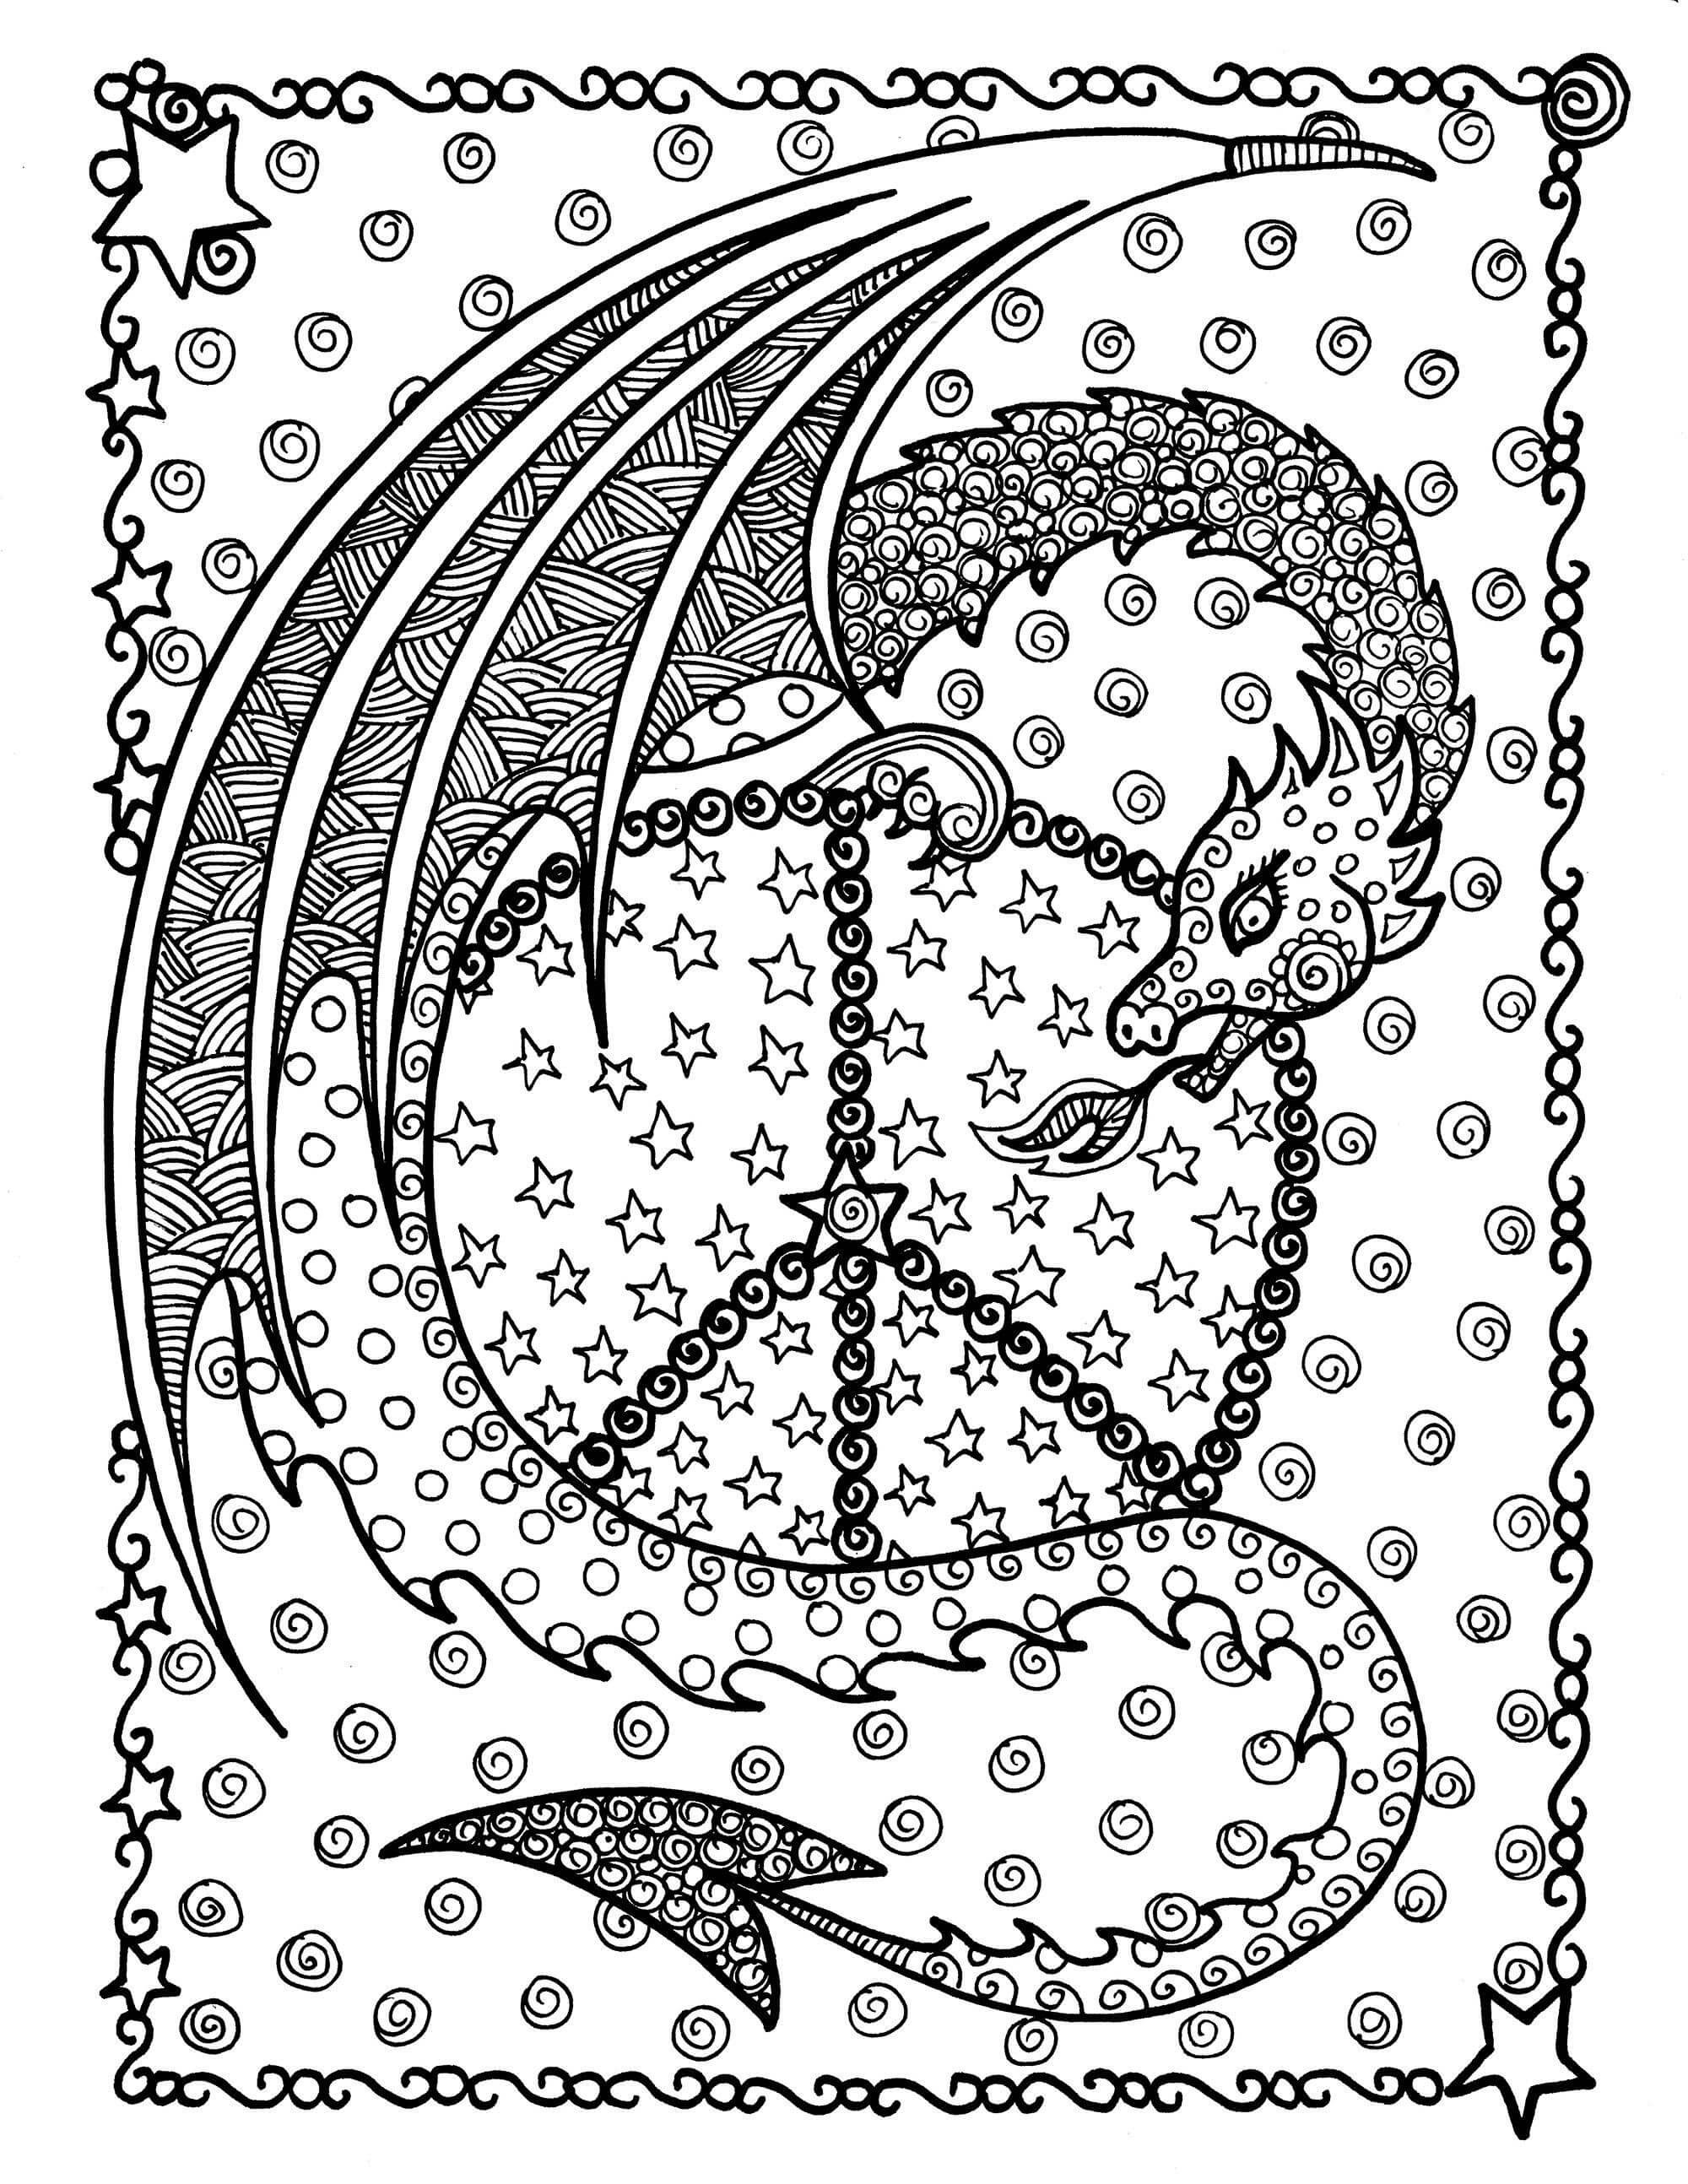 Coloring Pages For Adults Difficult  Coloring Pages For Adults Difficult Animals 6